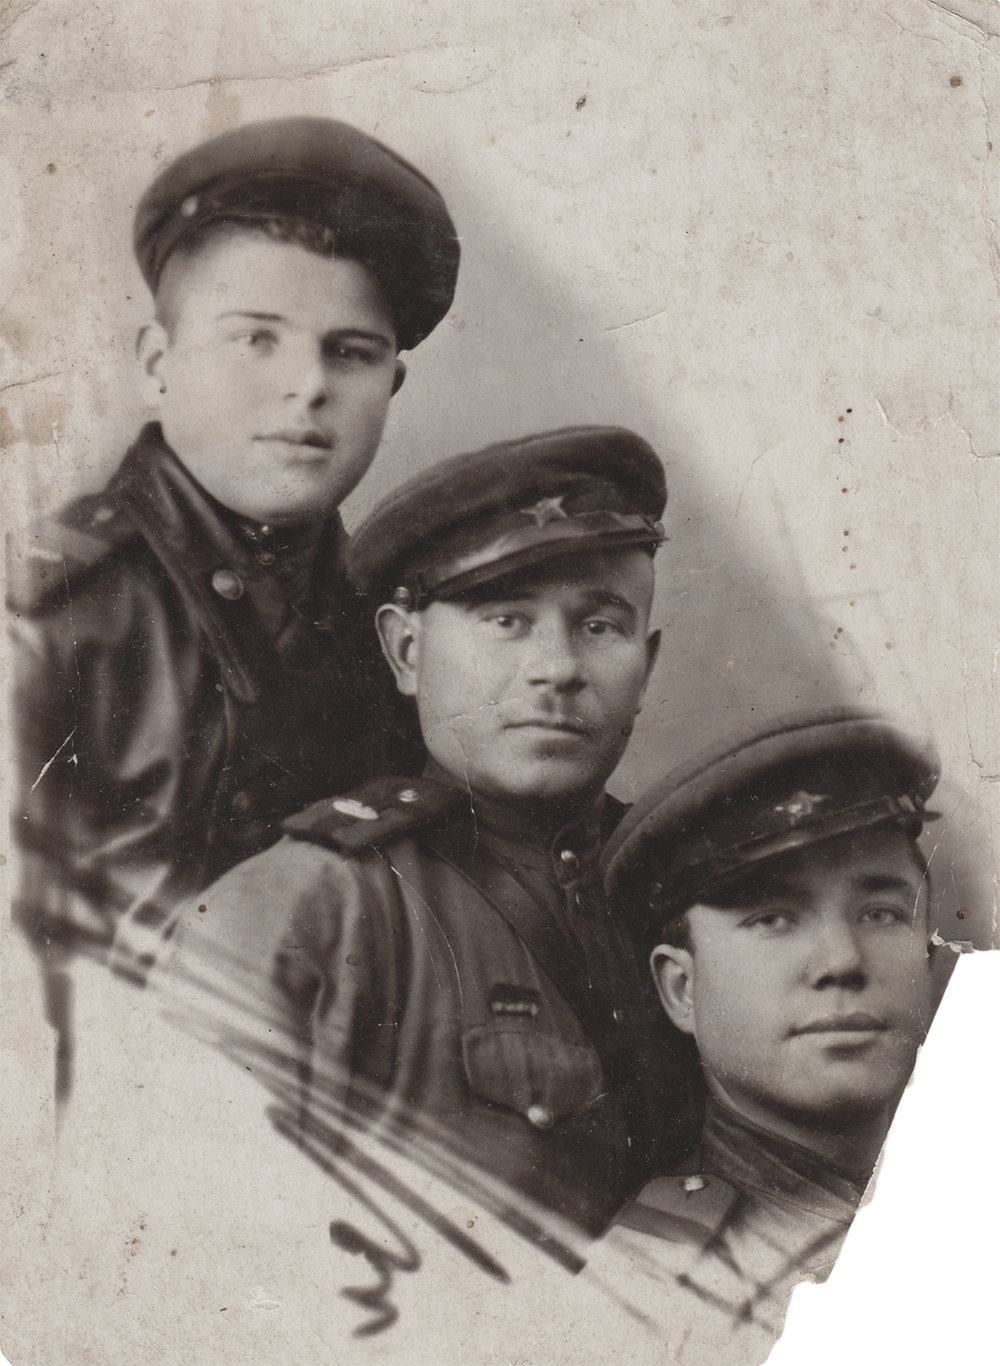 Sverdlov, first from right.  December 25, 1944